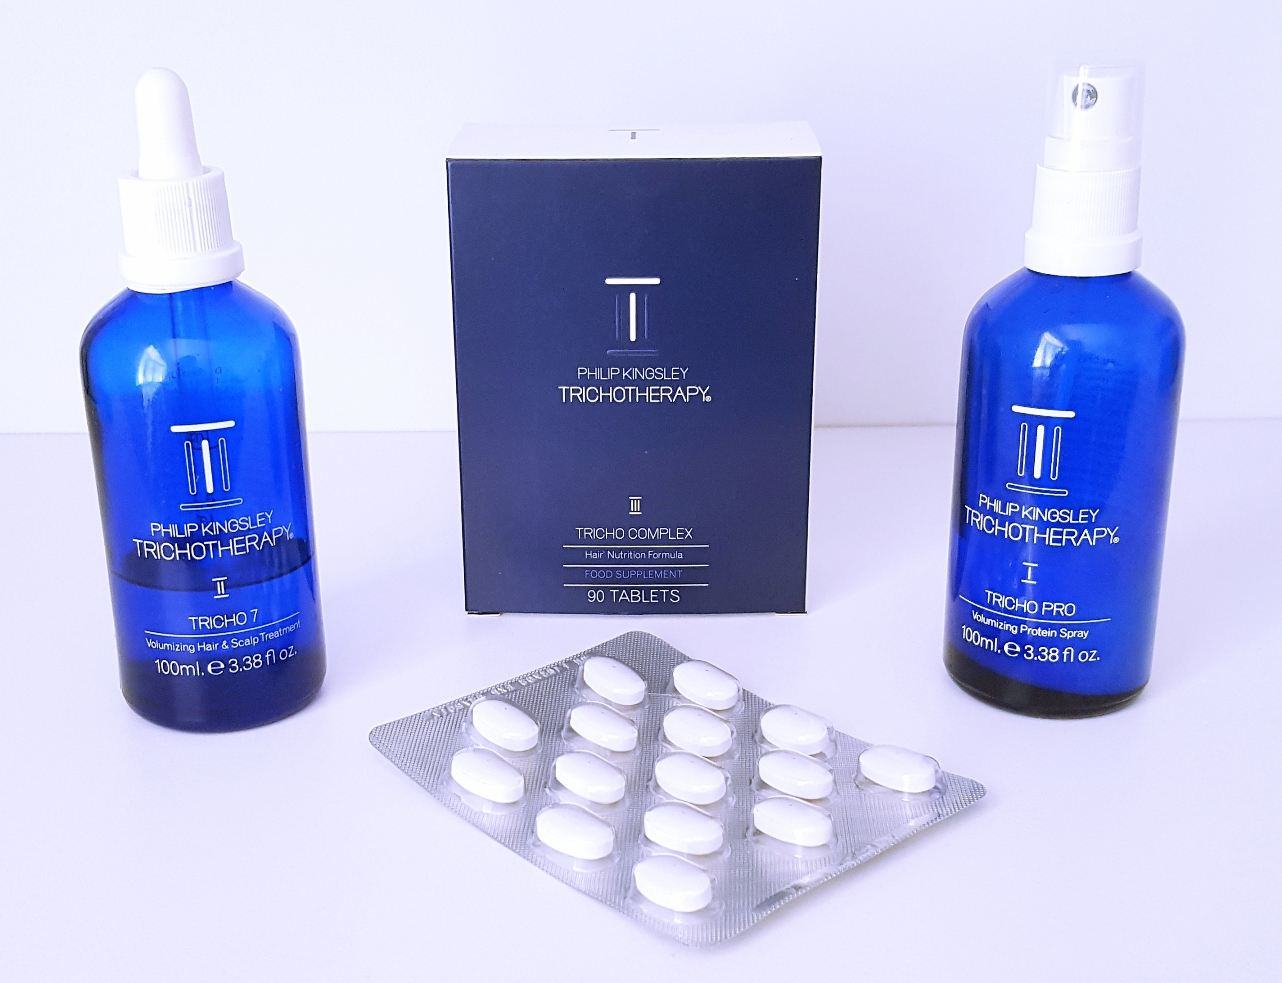 Philip Kingsley Trichotherapy small